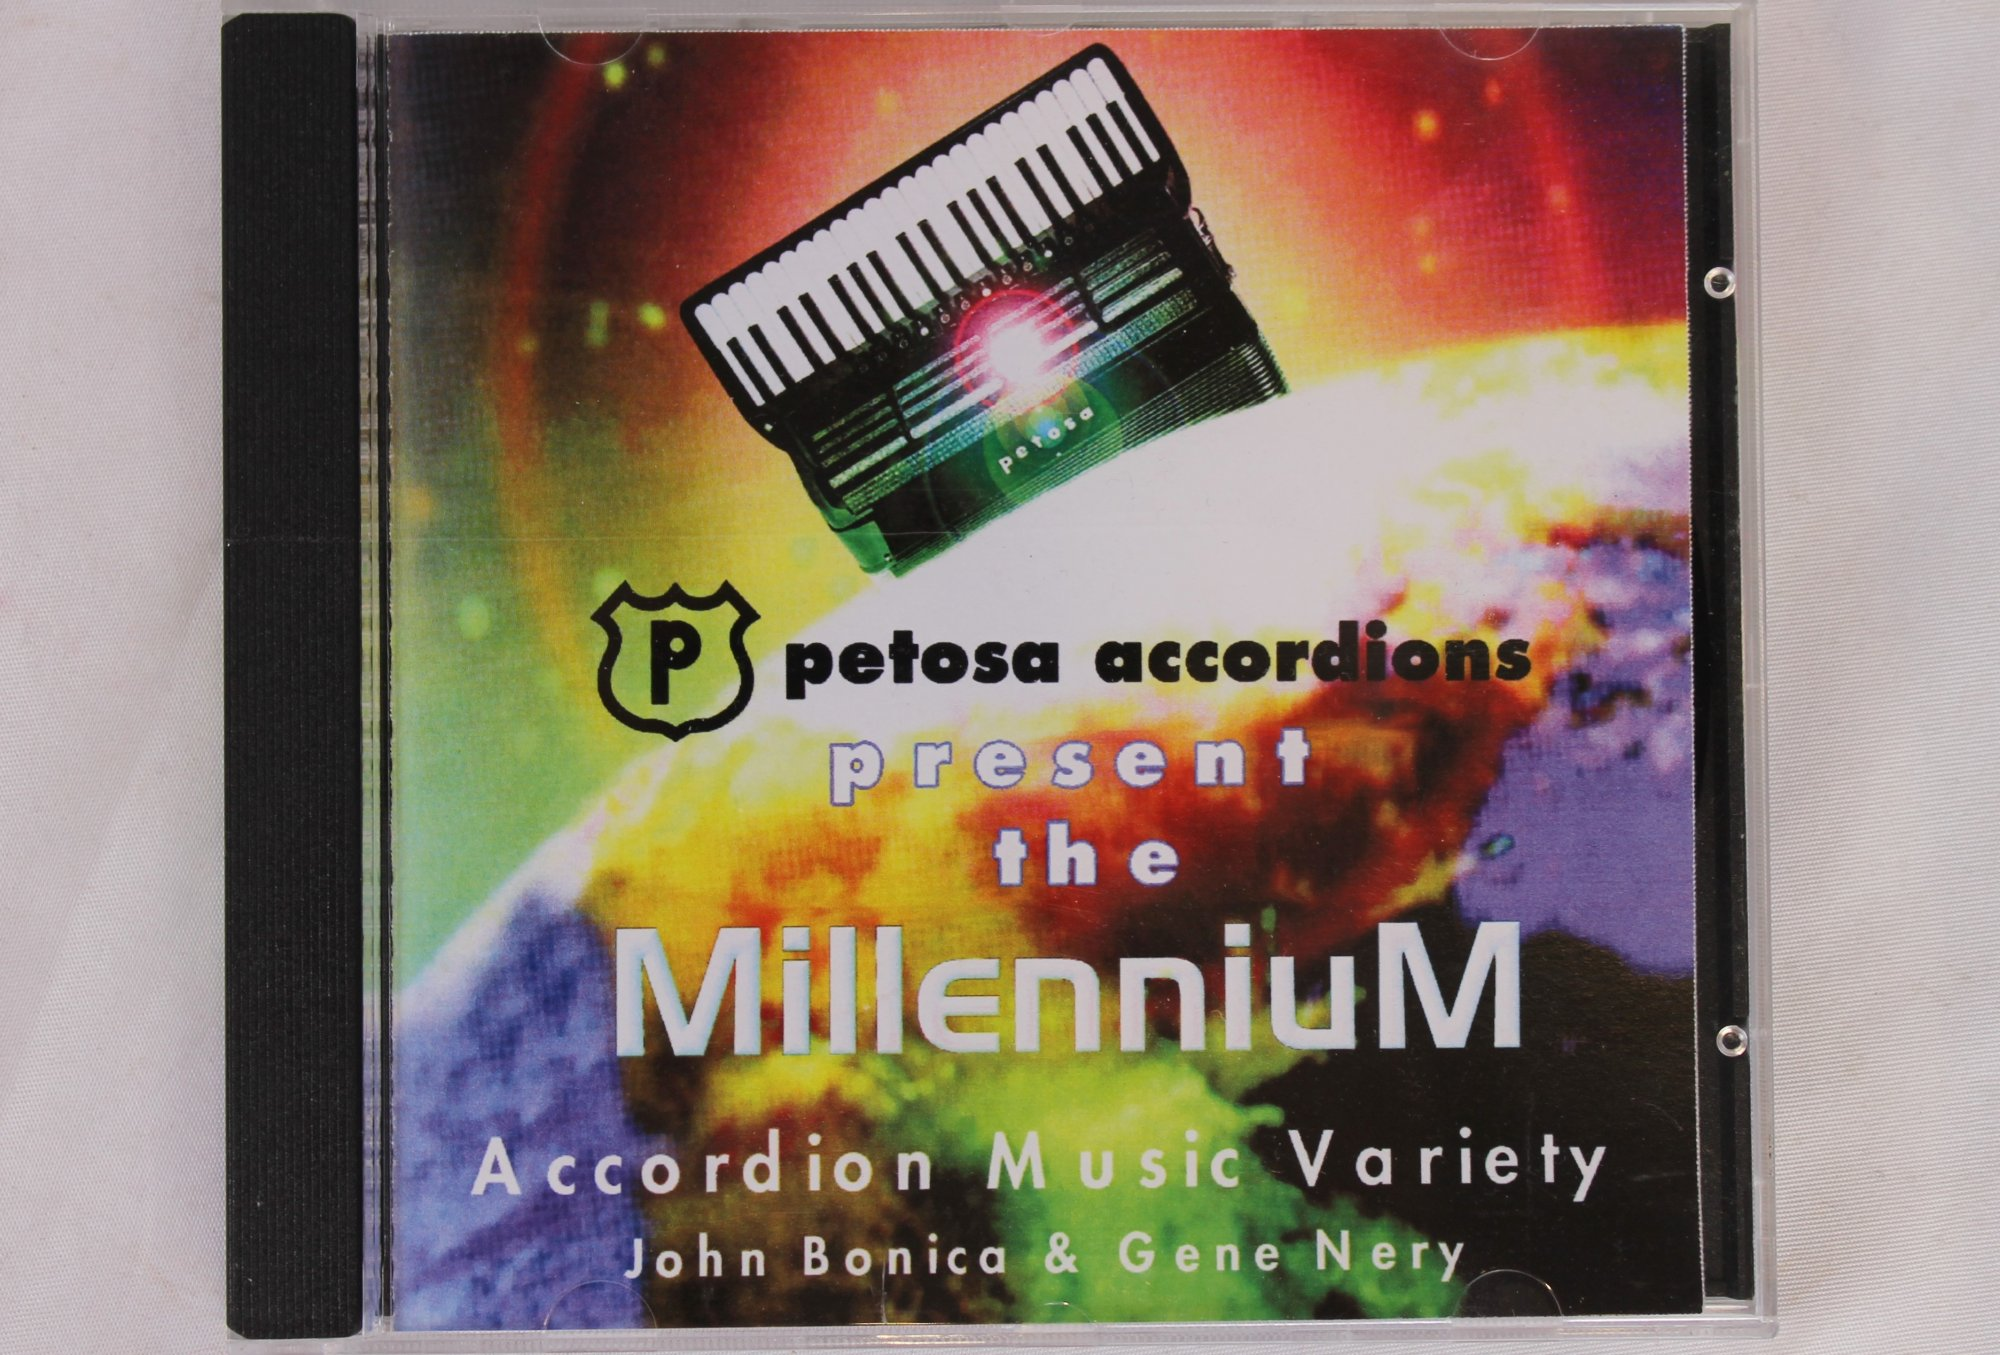 Petosa Accordions presents the Millenium (CD)